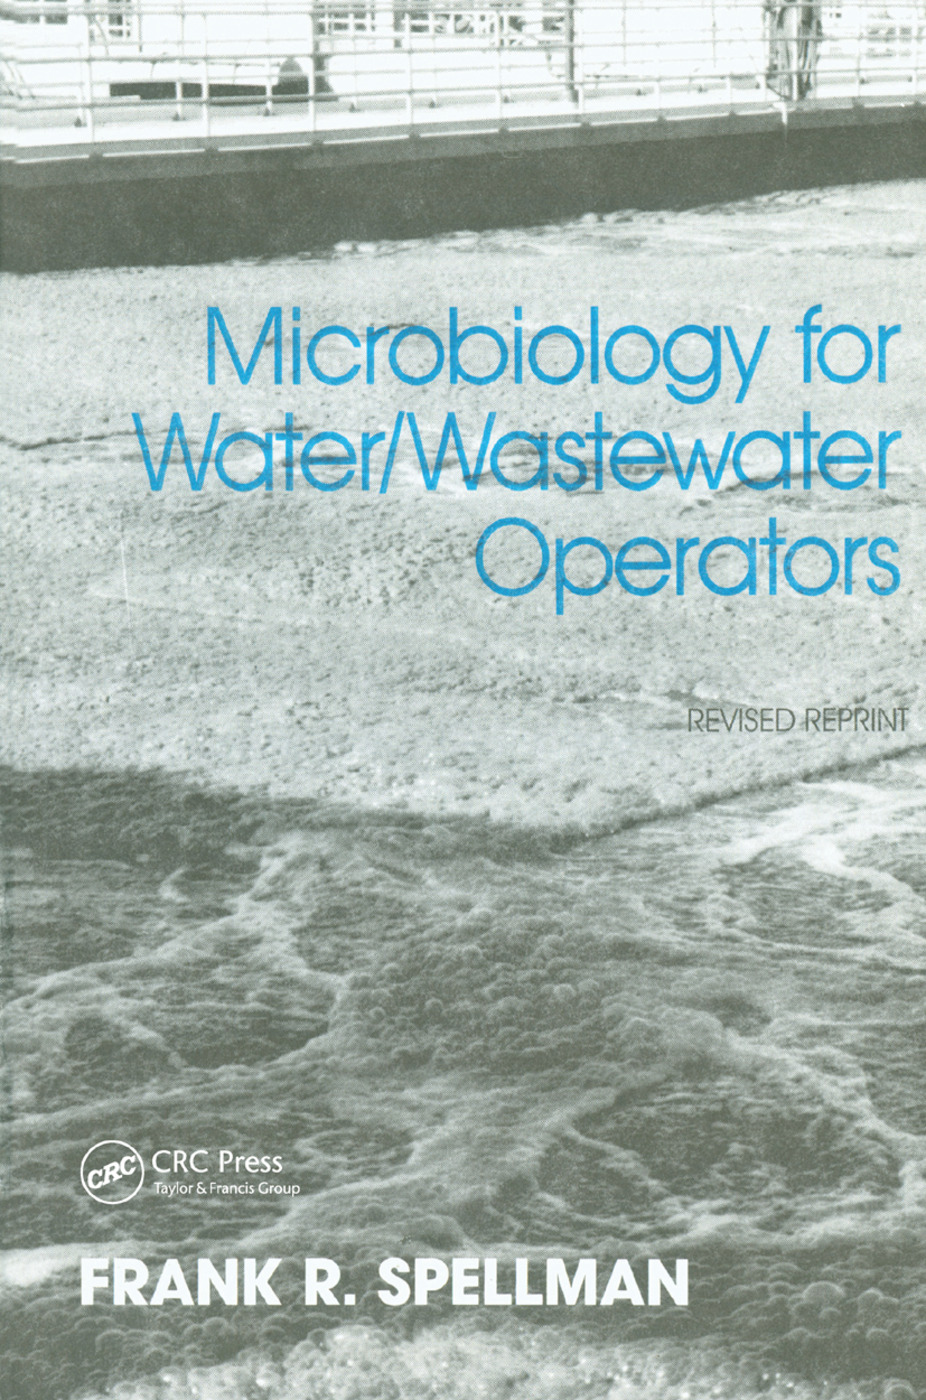 Microbiology for Water and Wastewater Operators (Revised Reprint)